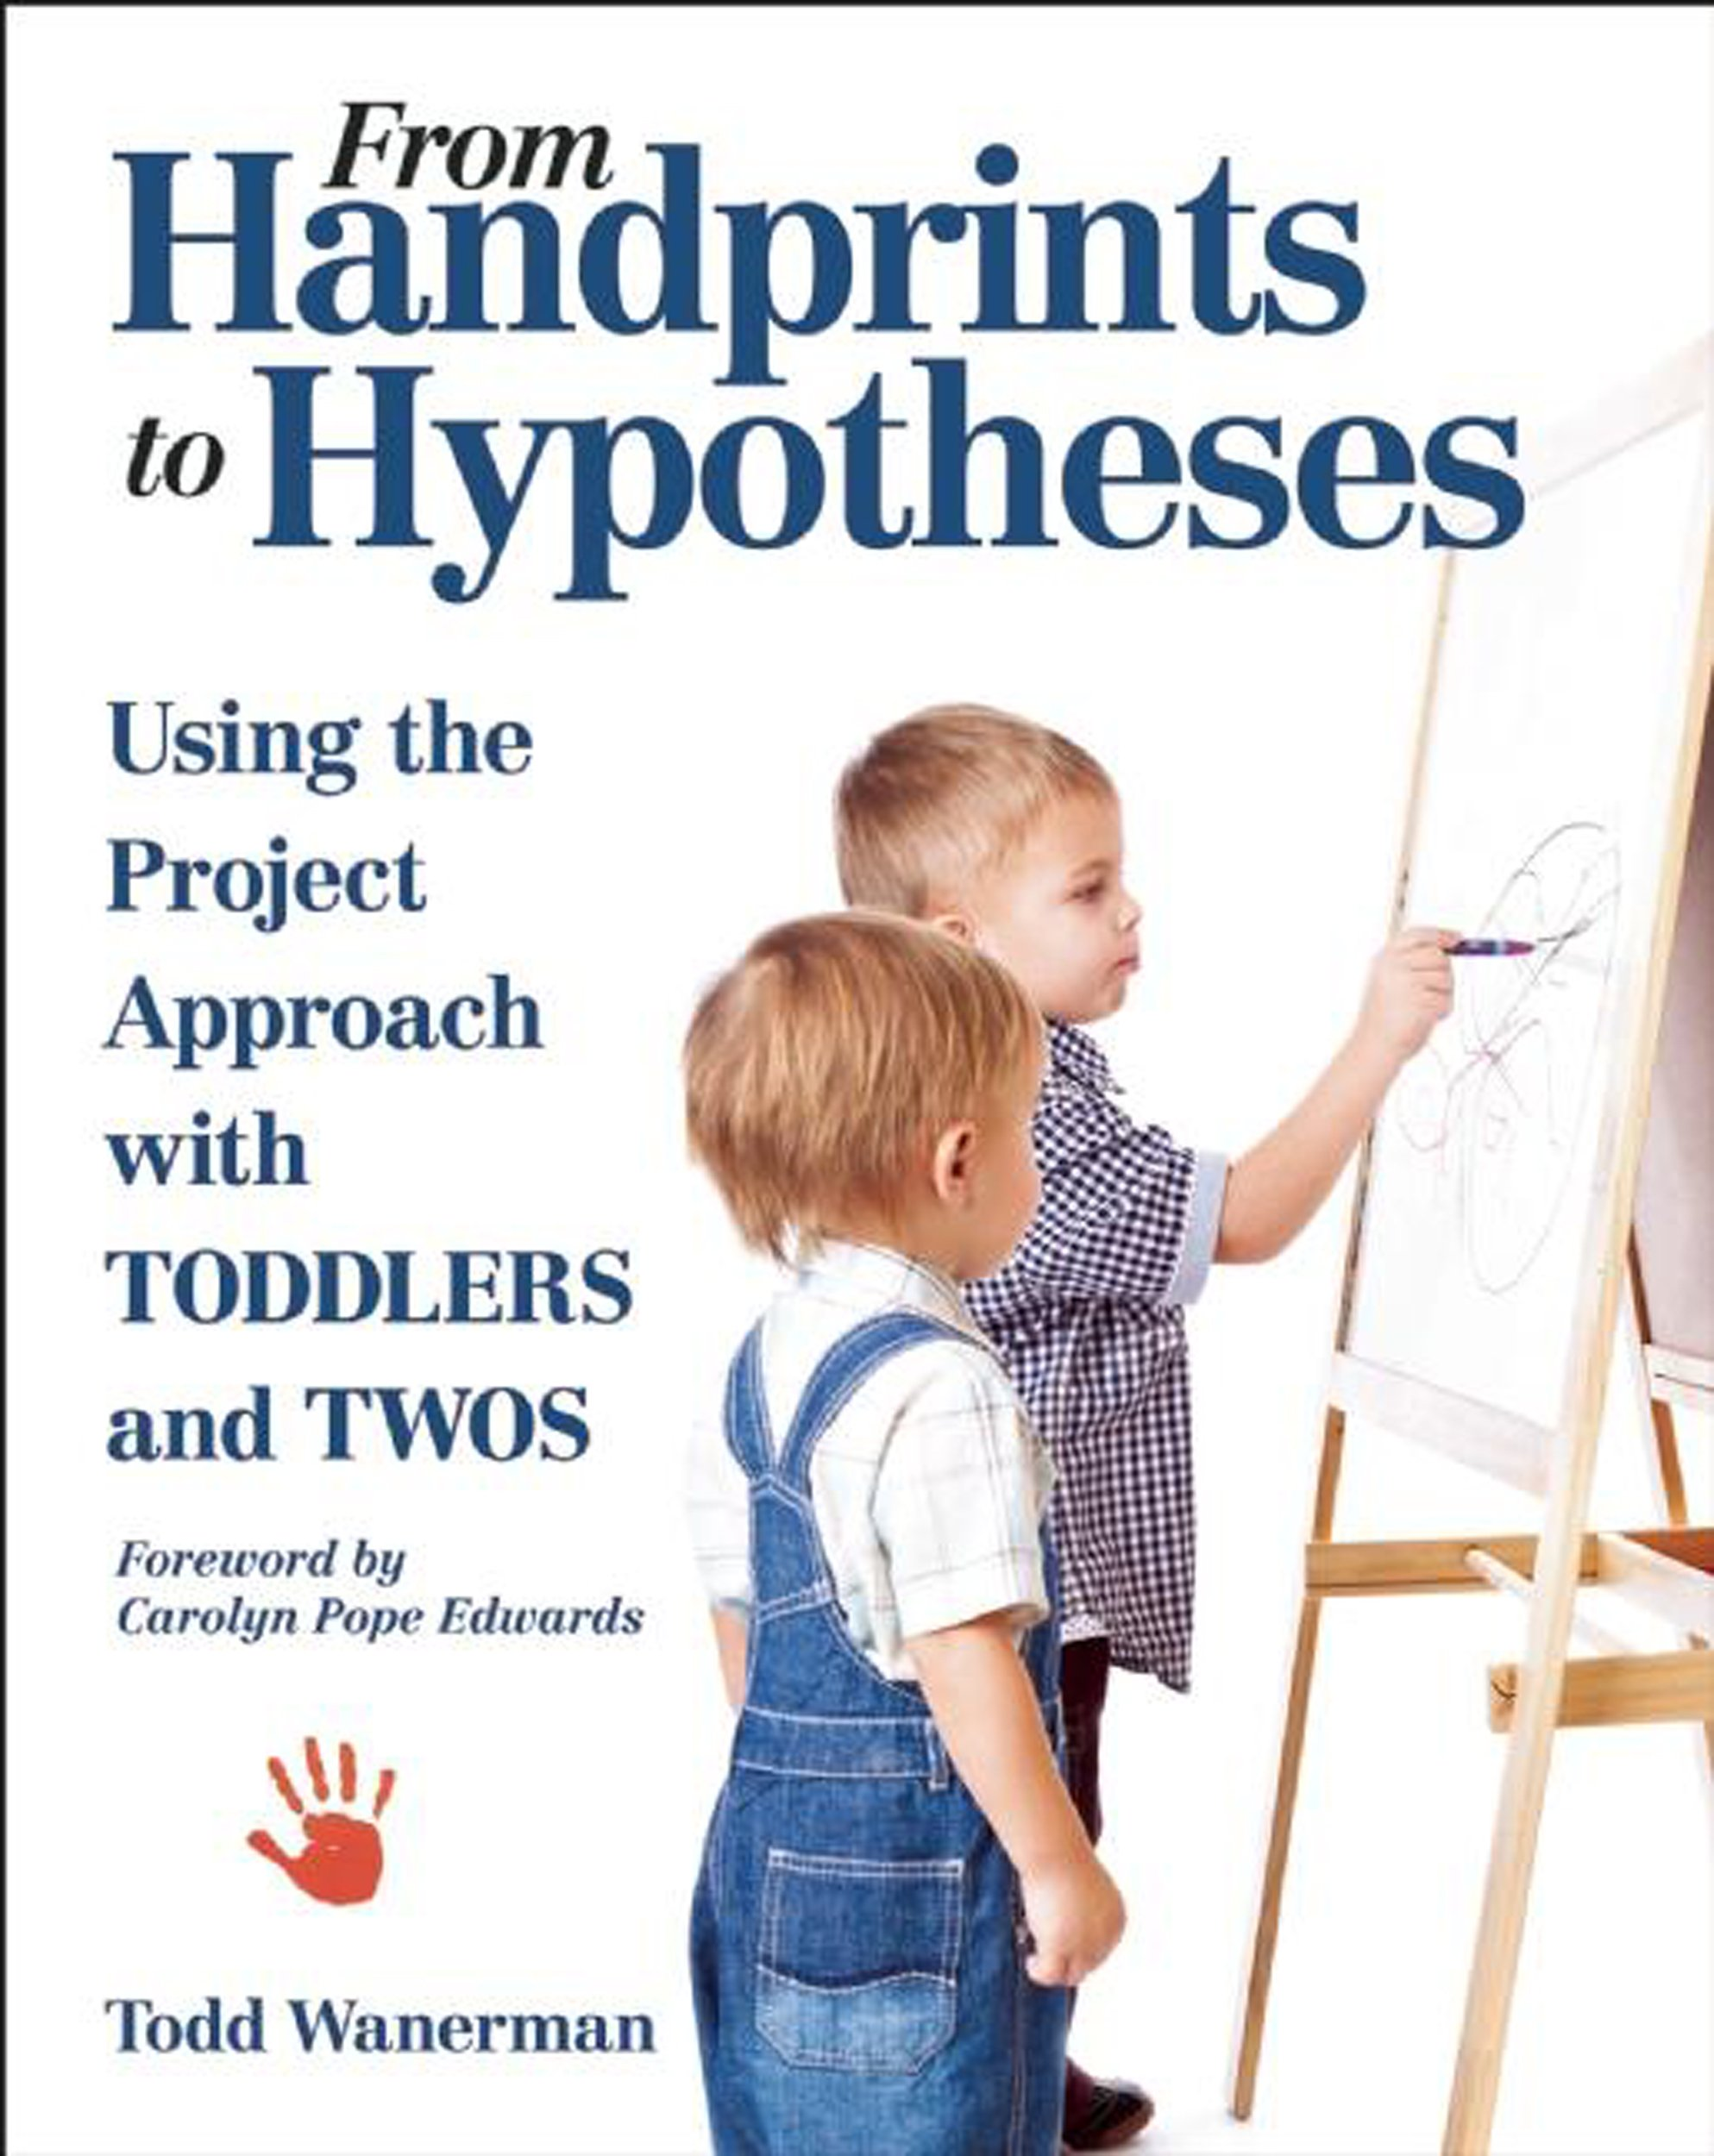 From Handprints to Hypotheses: Using the Project Approach with Toddlers and Twos (NONE) ebook